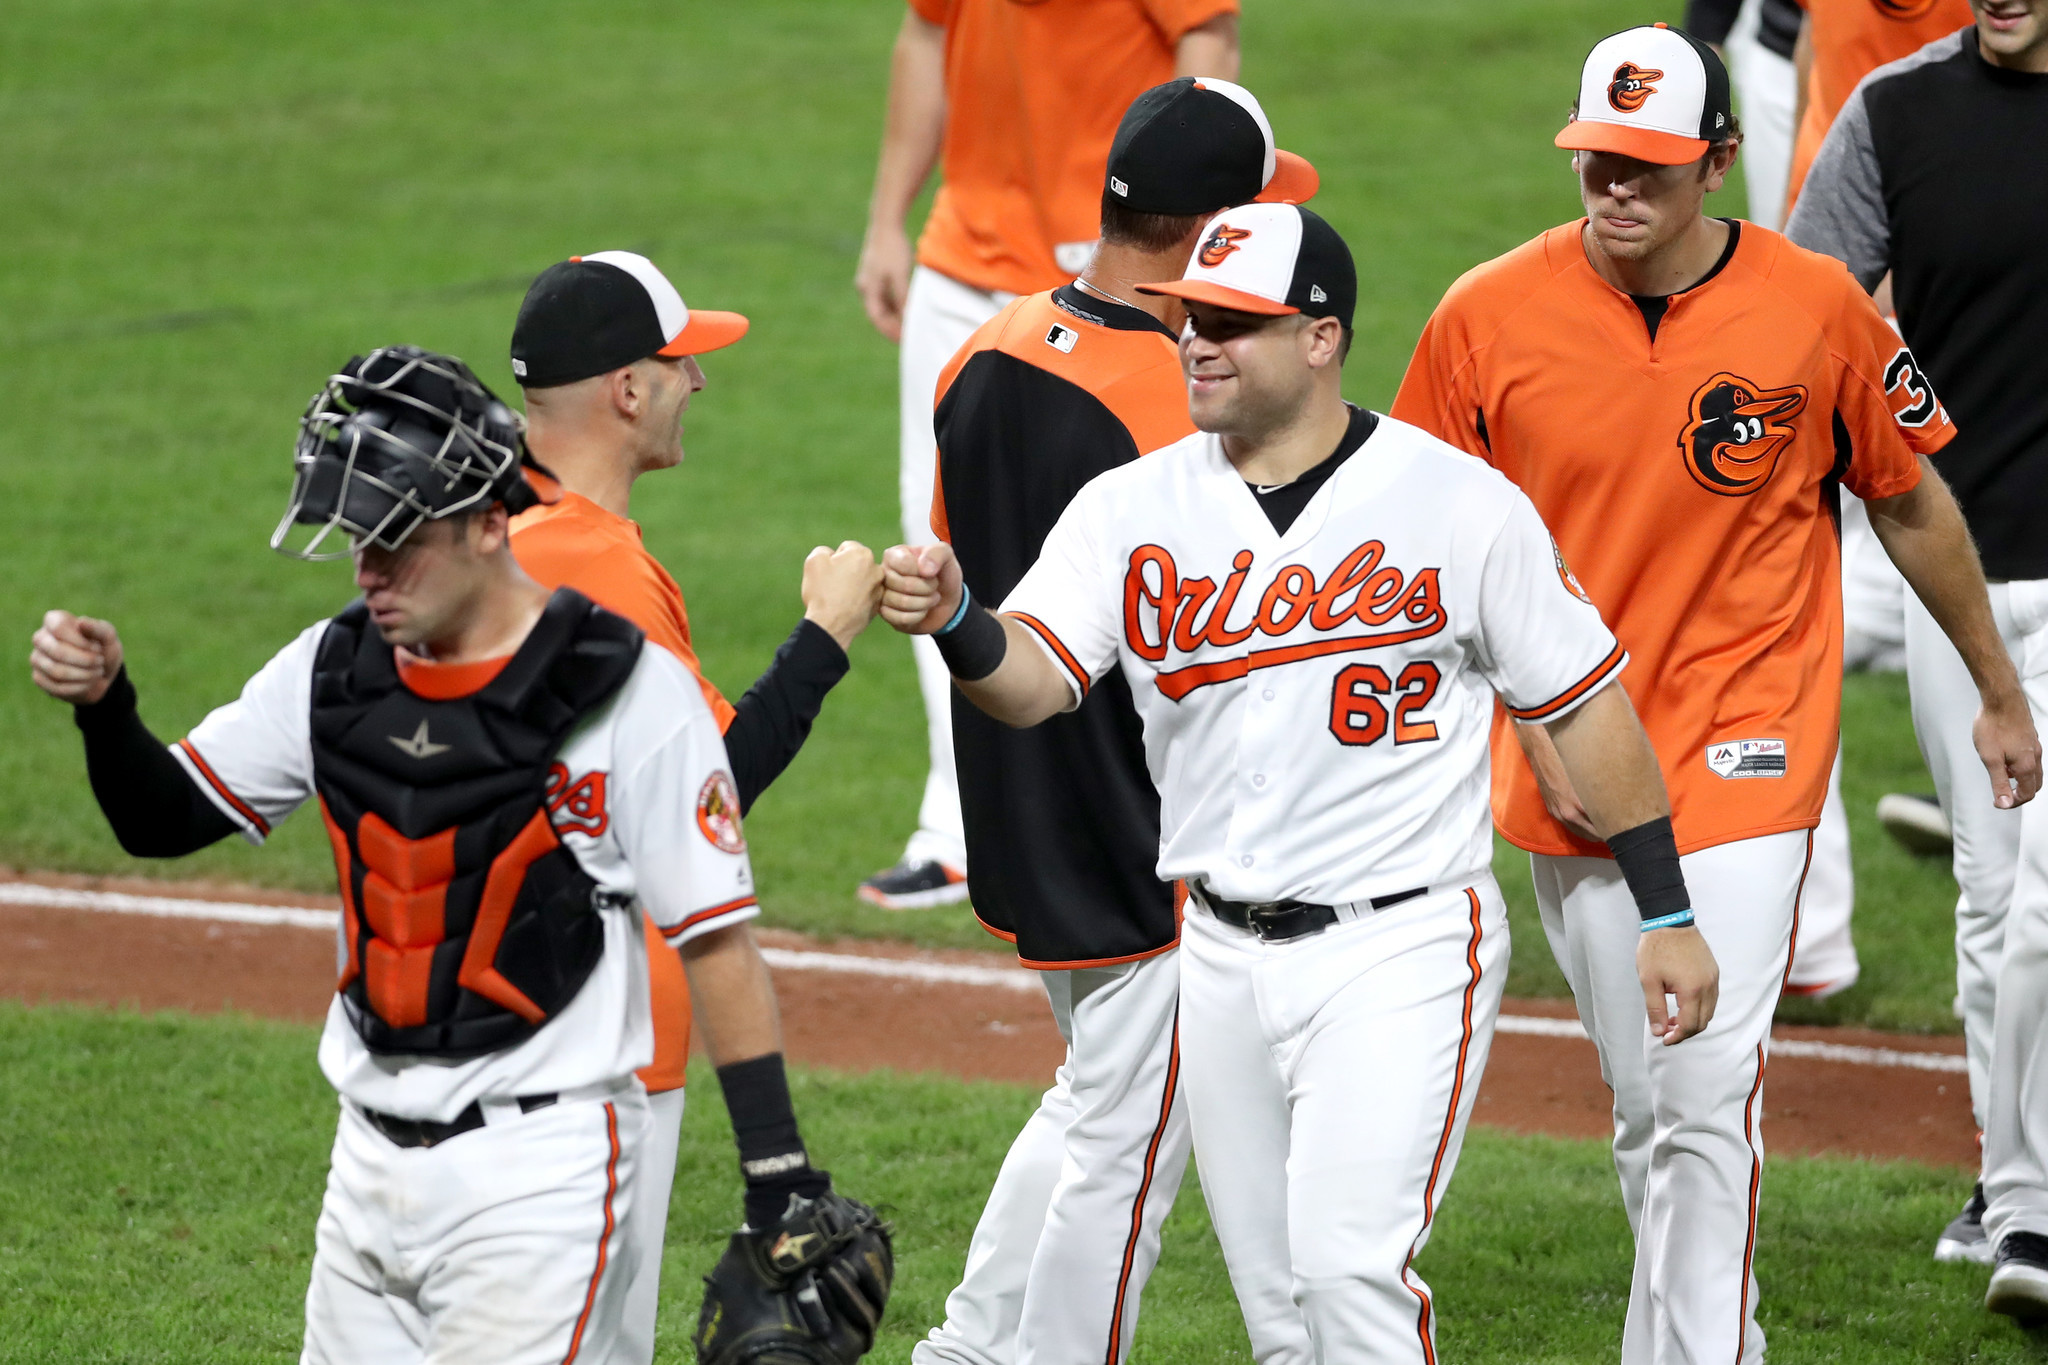 Bal-orioles-rewind-looking-back-at-wednesday-night-s-2-1-win-over-the-blue-jays-20180919